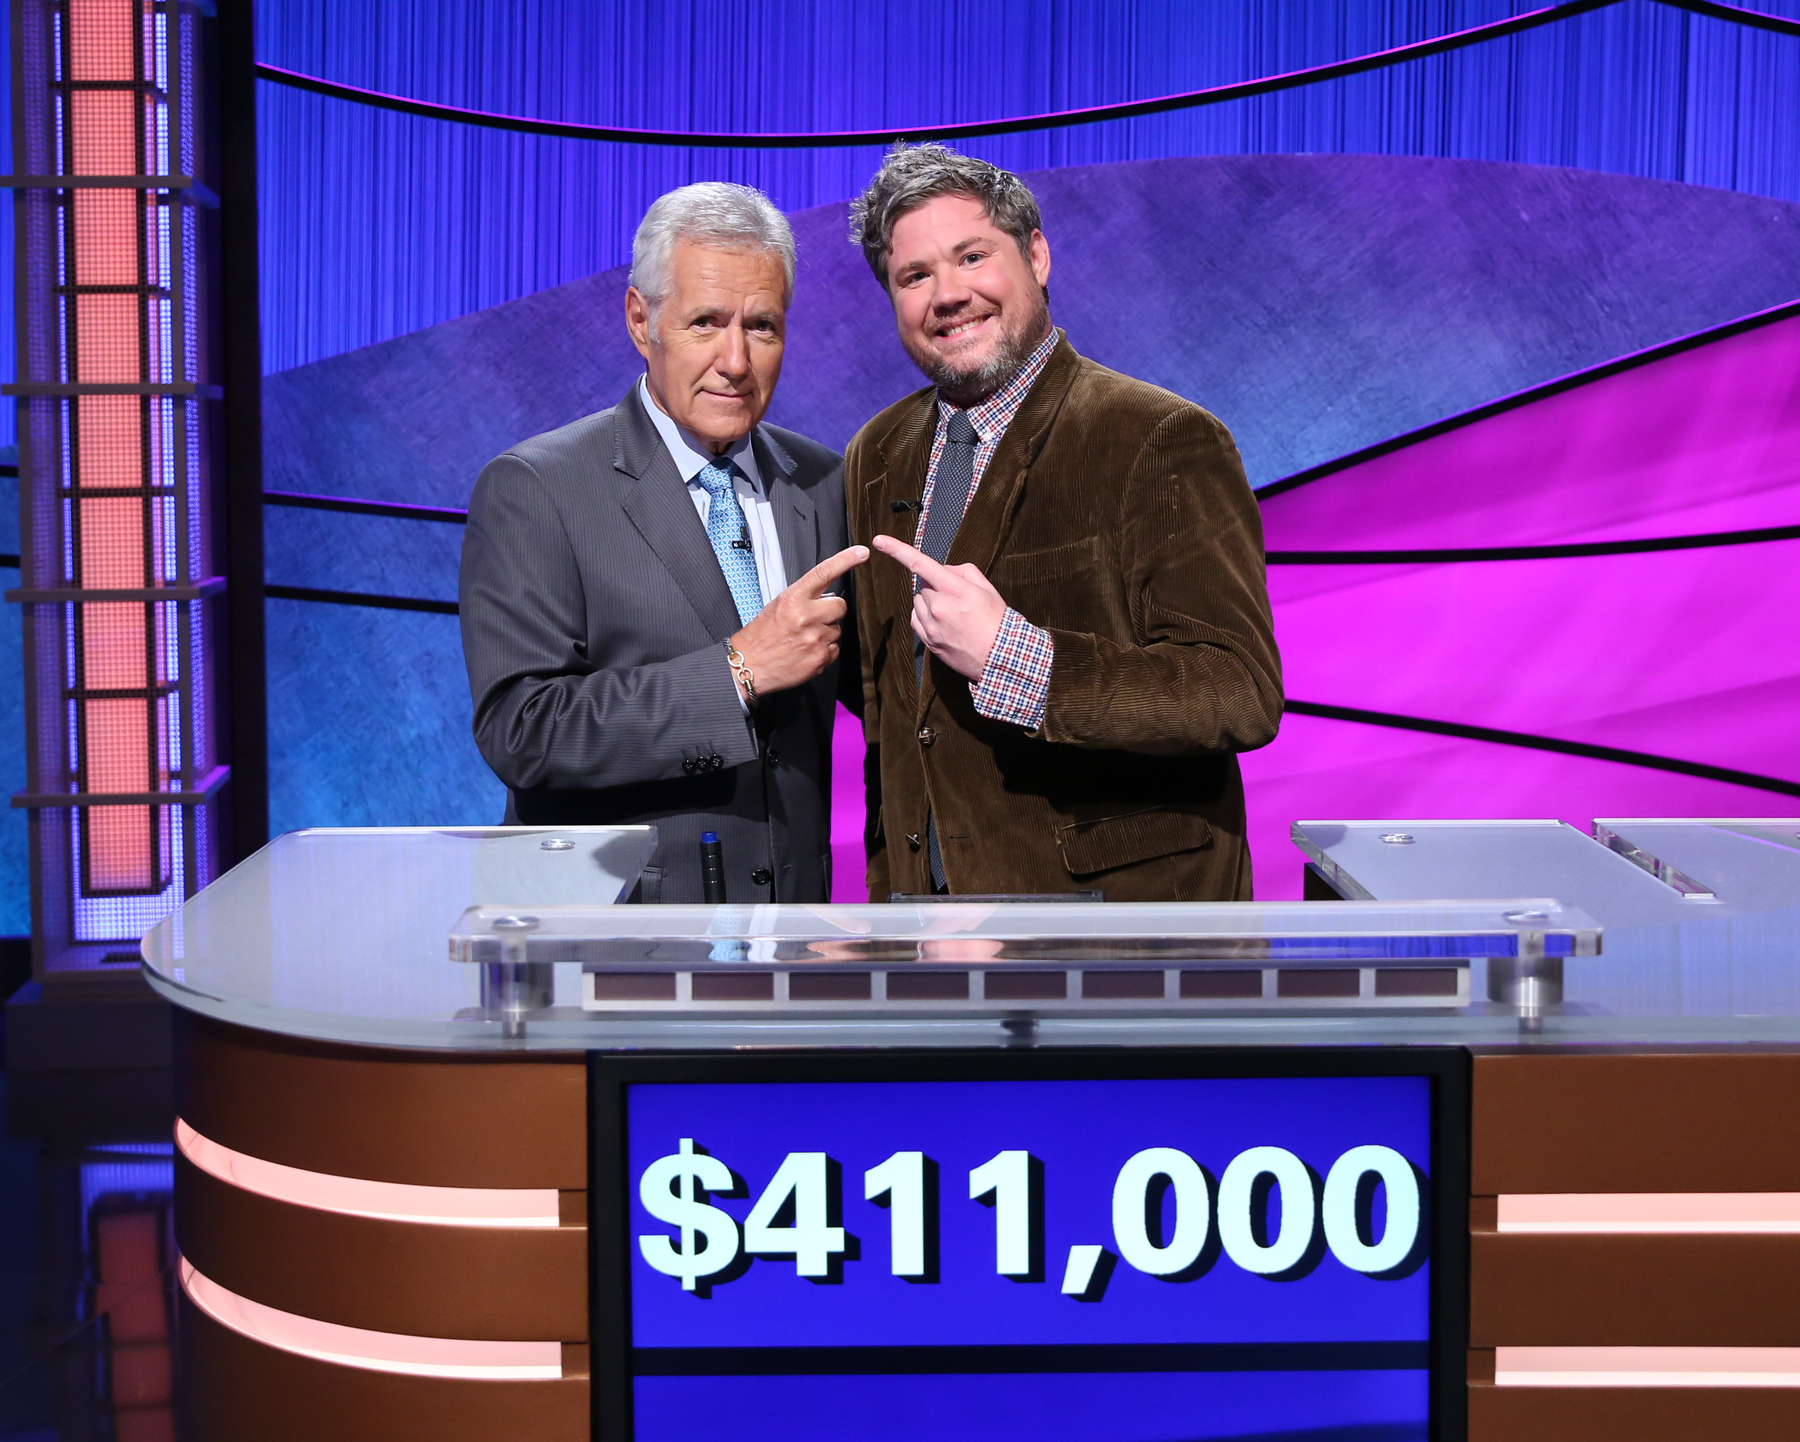 America's favorite Jeopardy! contestant's run ends after $411000 in winnings